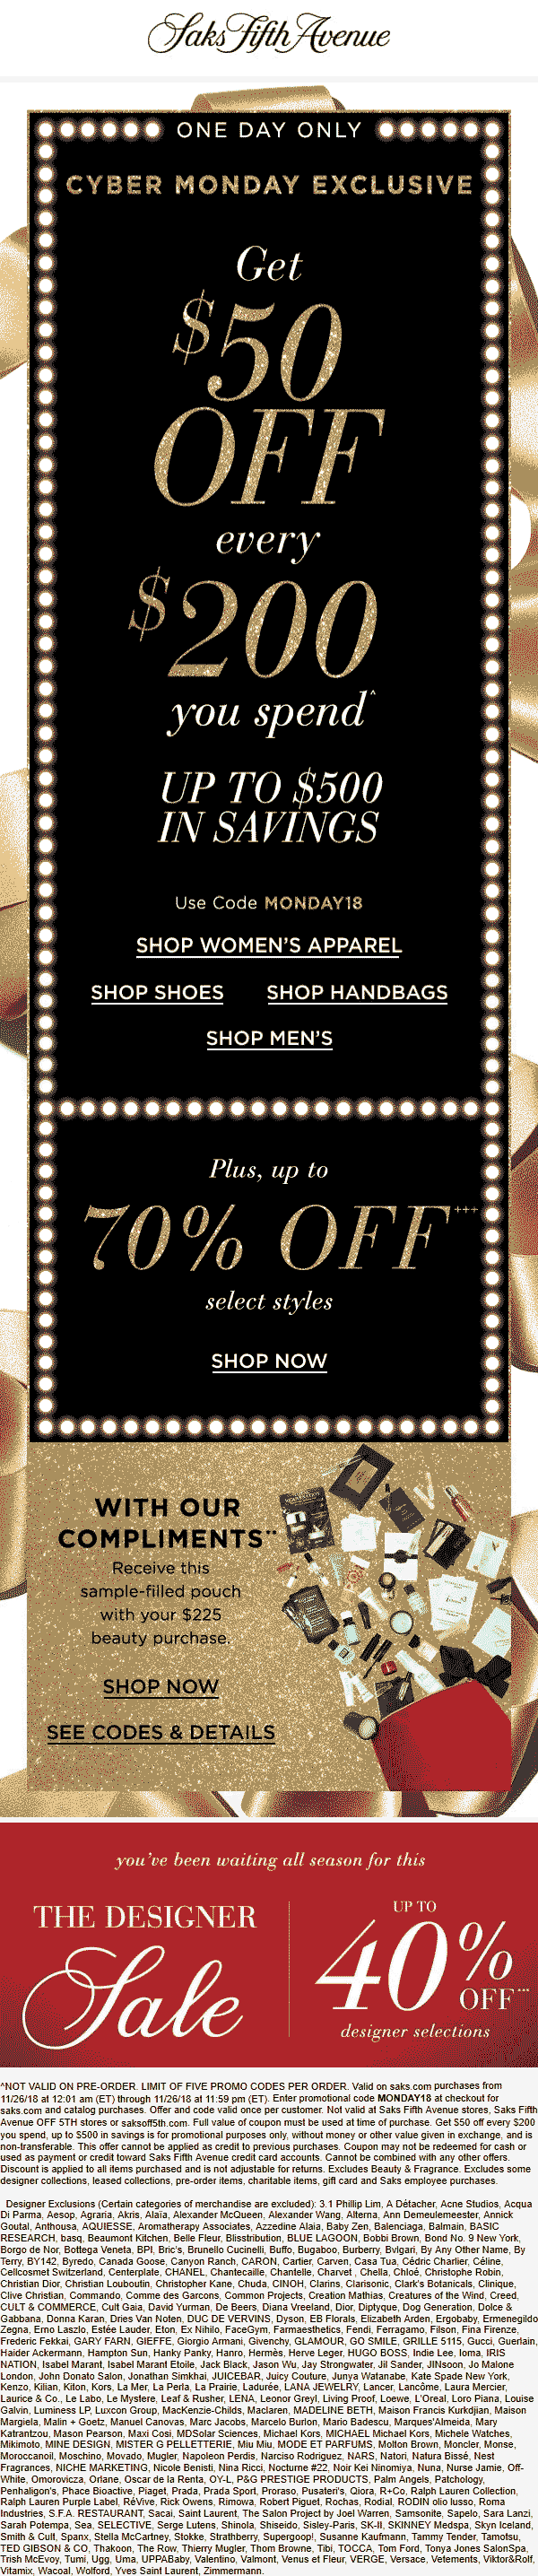 Saks Fifth Avenue Coupon November 2019 $50 off every $200 online today at Saks Fifth Avenue via promo code MONDAY18